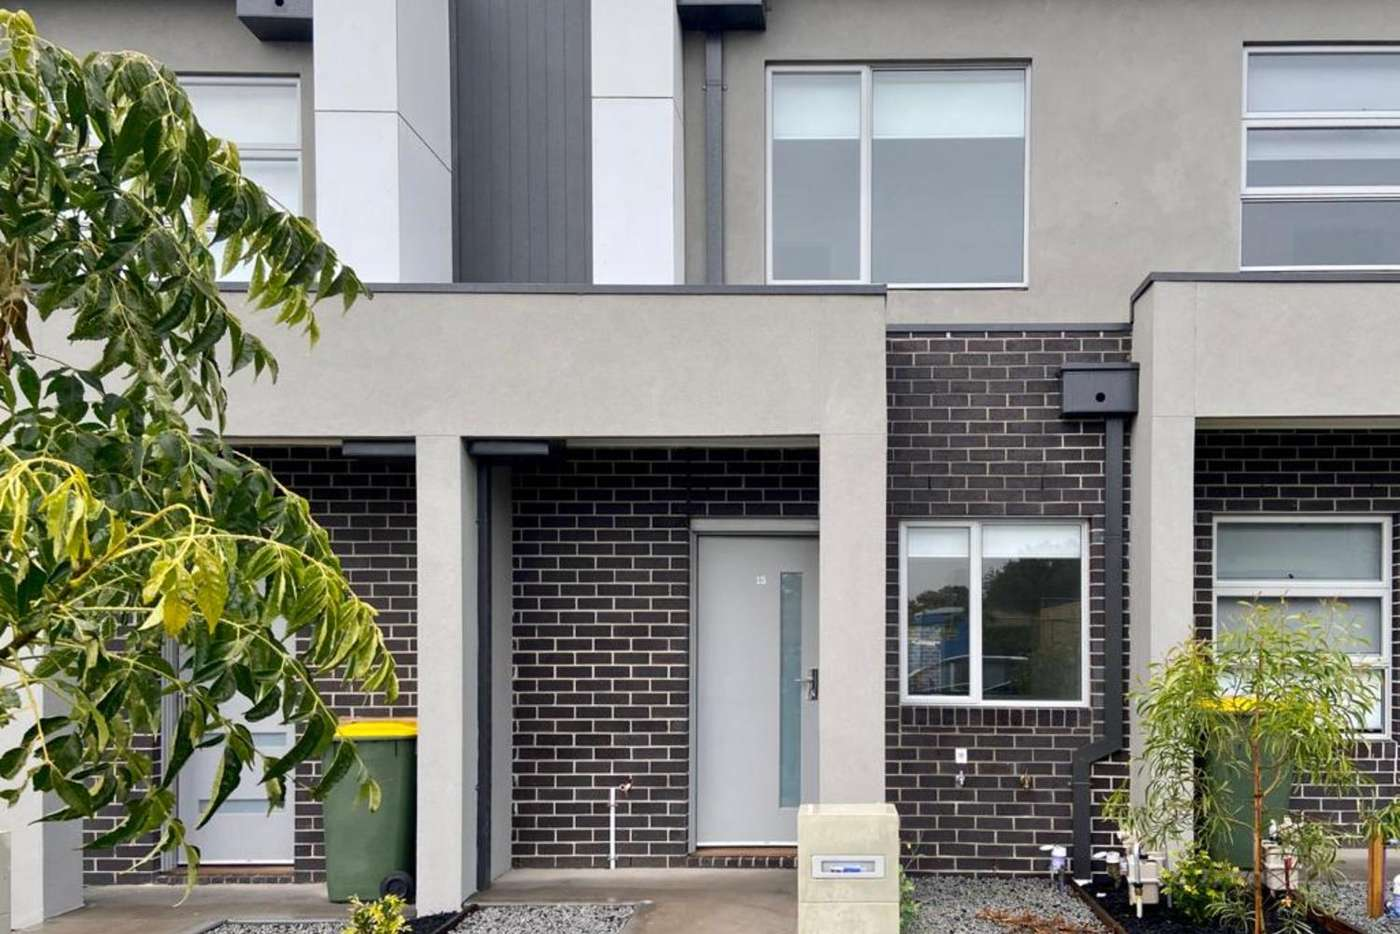 Main view of Homely townhouse listing, 15 Innes Street, Wollert VIC 3750